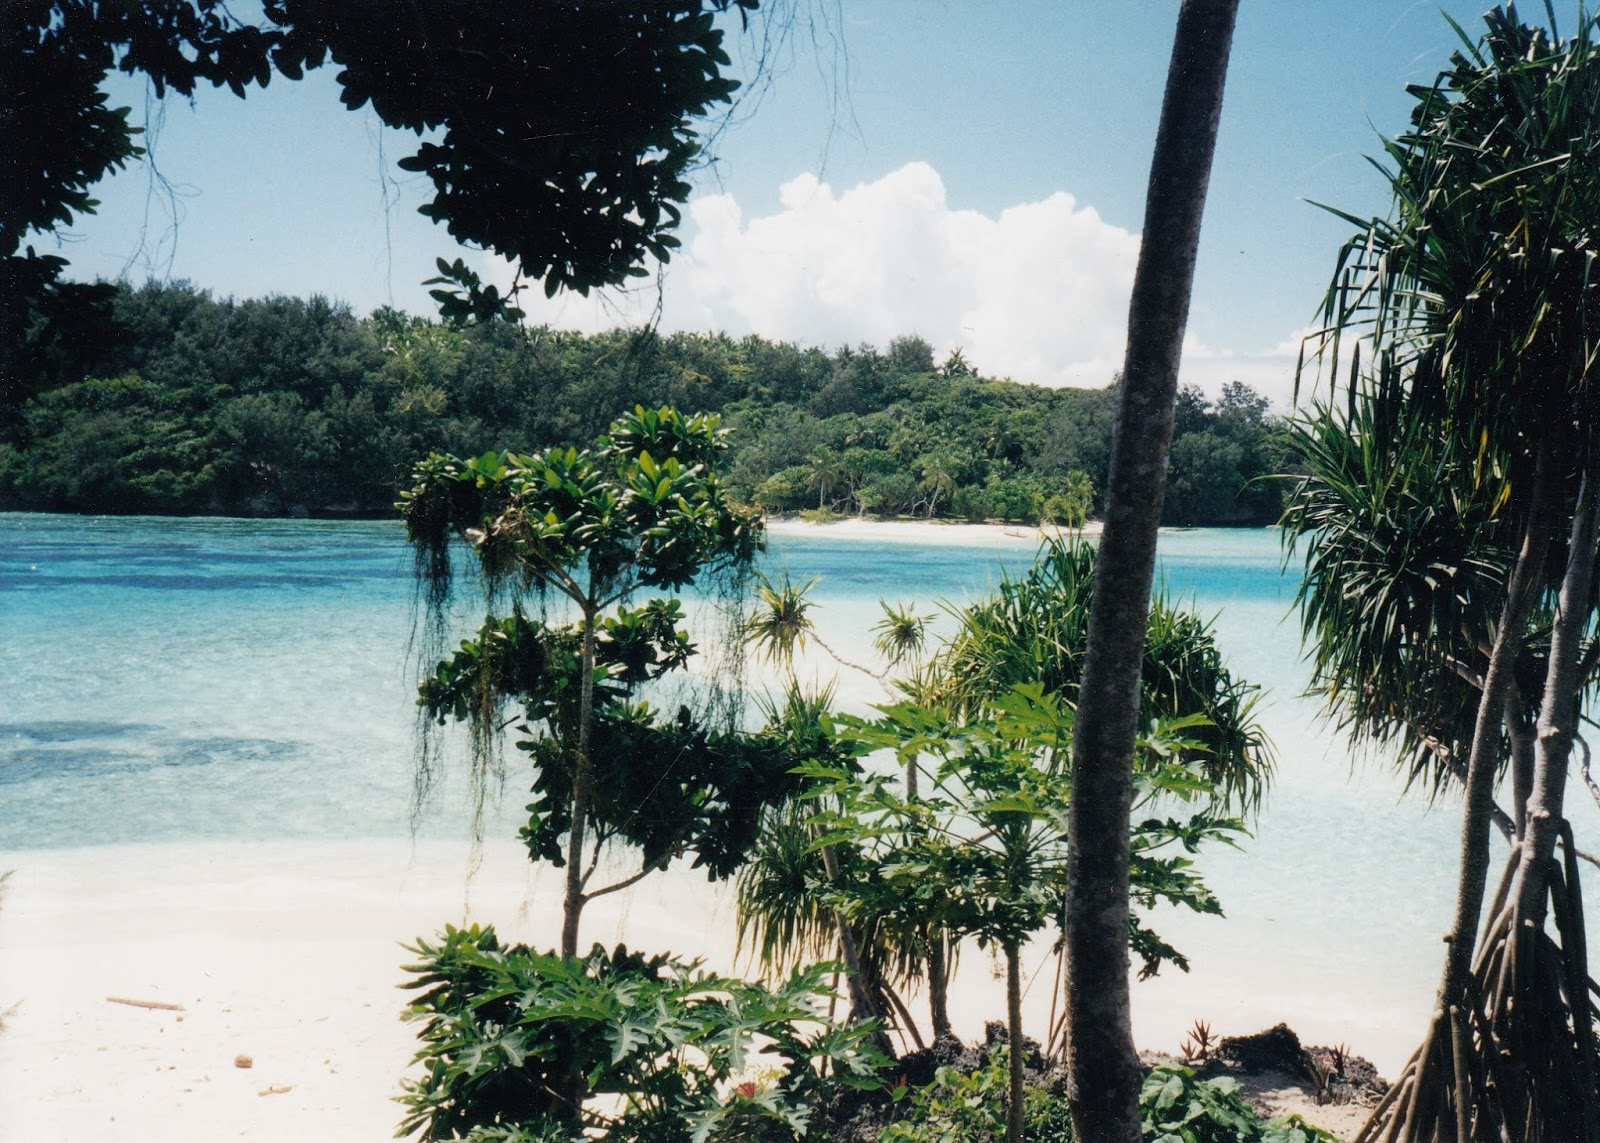 Tonga, where I visited back in 1999 as a keen-eyed medical student; a culture so different from my own.